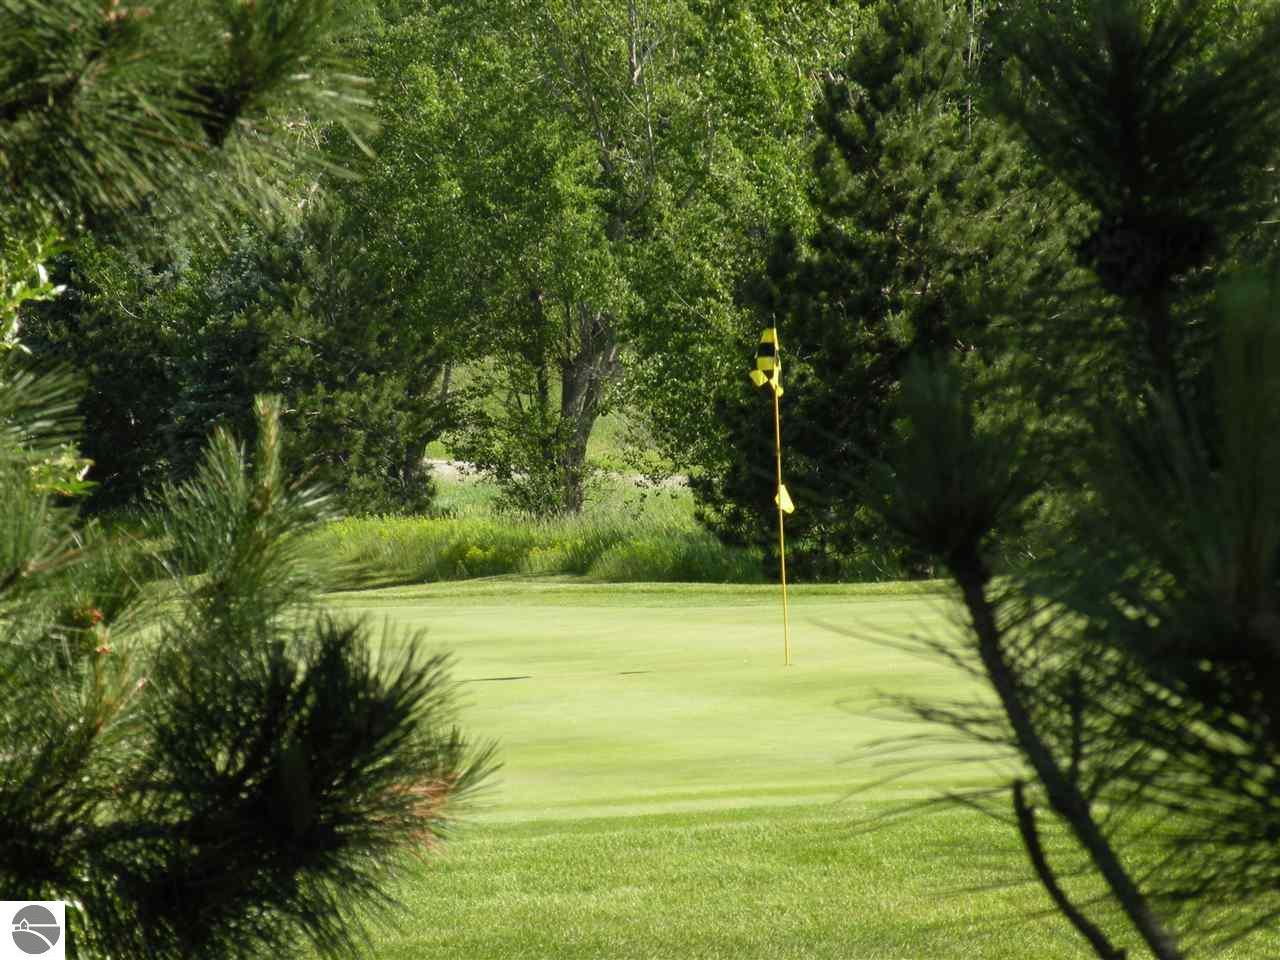 TBD Golf Meadows Drive - Photo 1